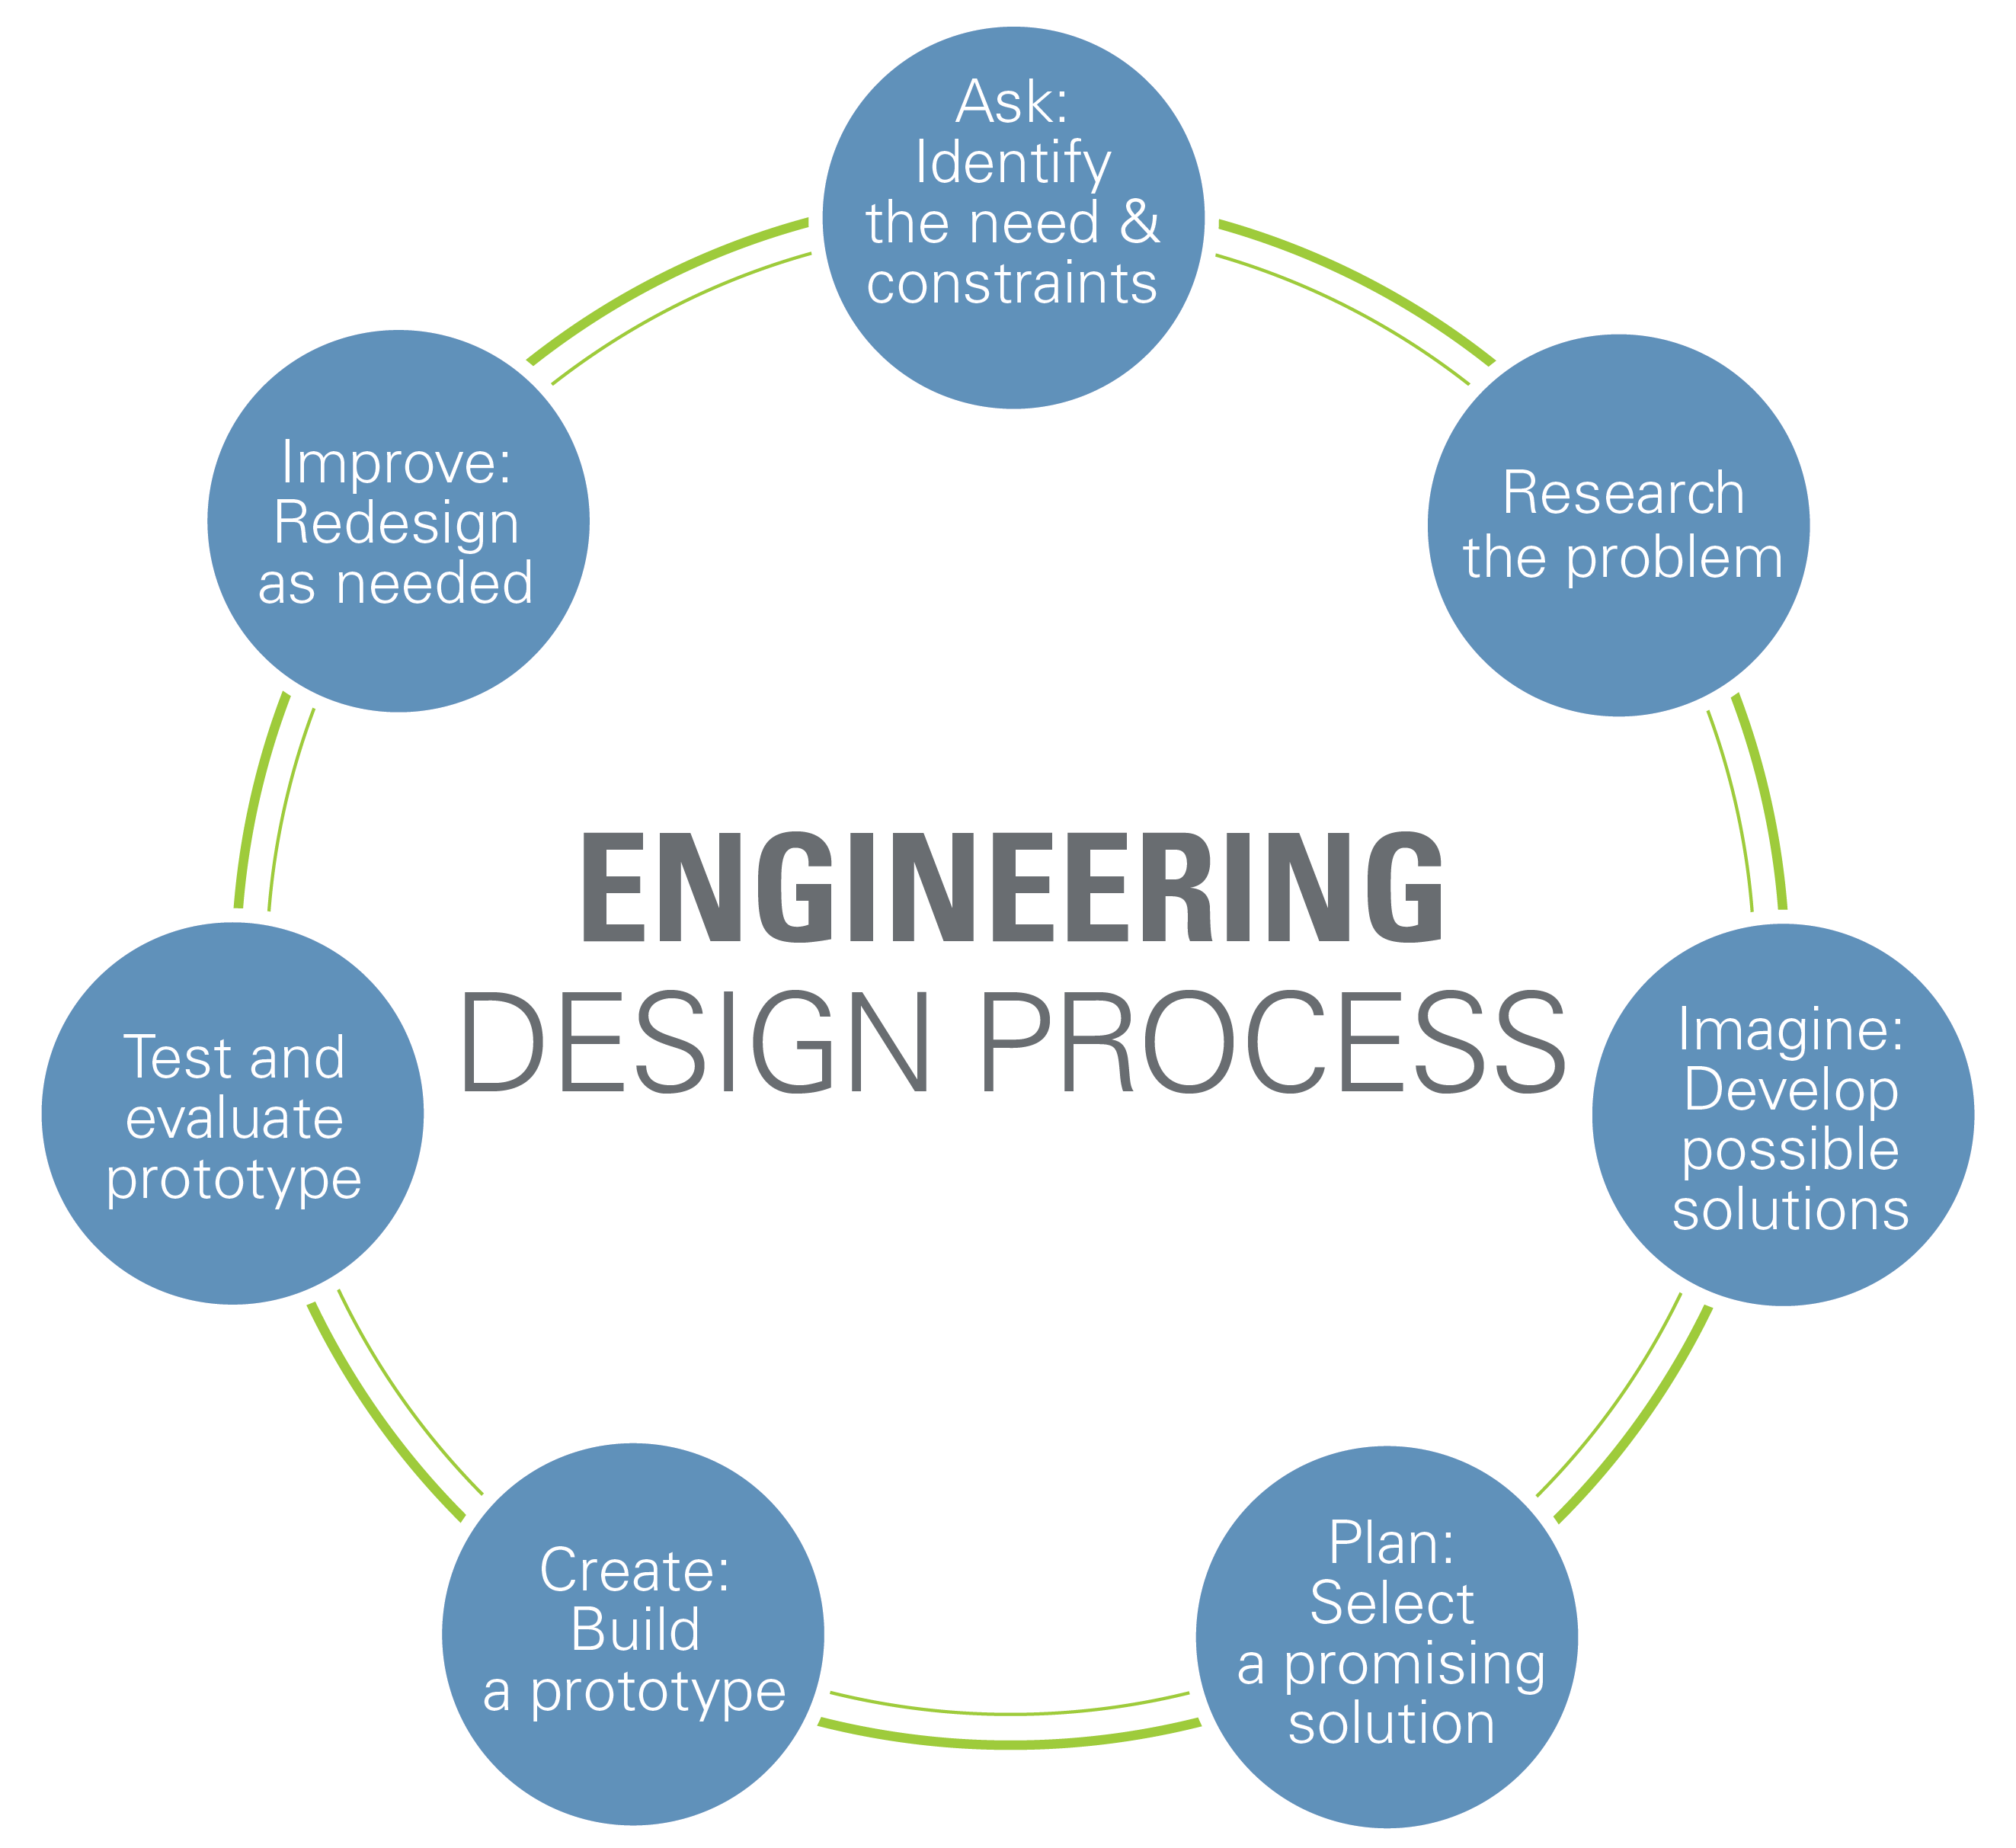 Engineering design process for What type of engineer designs buildings